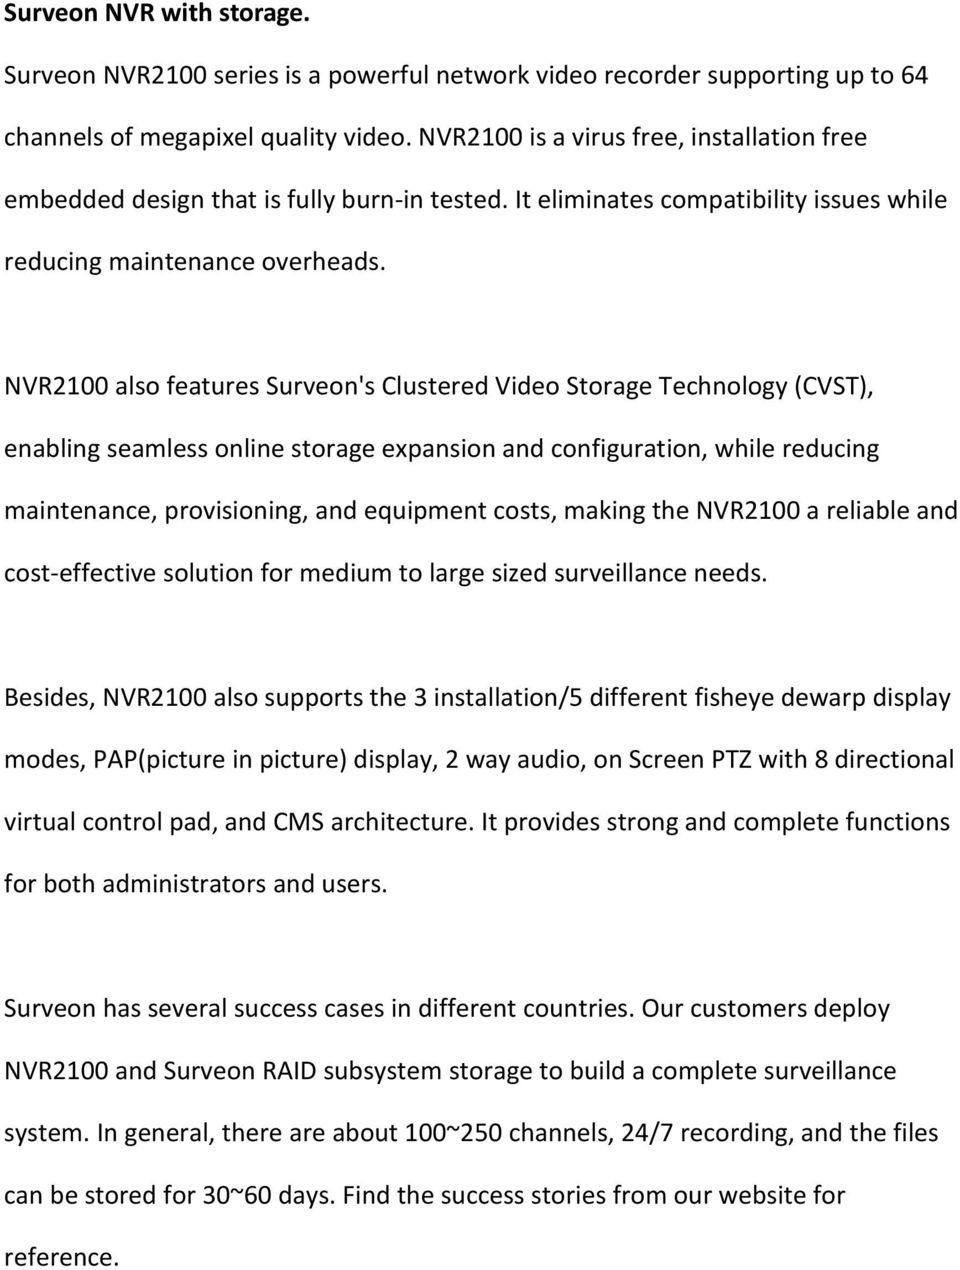 NVR2100 also features Surveon's Clustered Video Storage Technology (CVST), enabling seamless online storage expansion and configuration, while reducing maintenance, provisioning, and equipment costs,